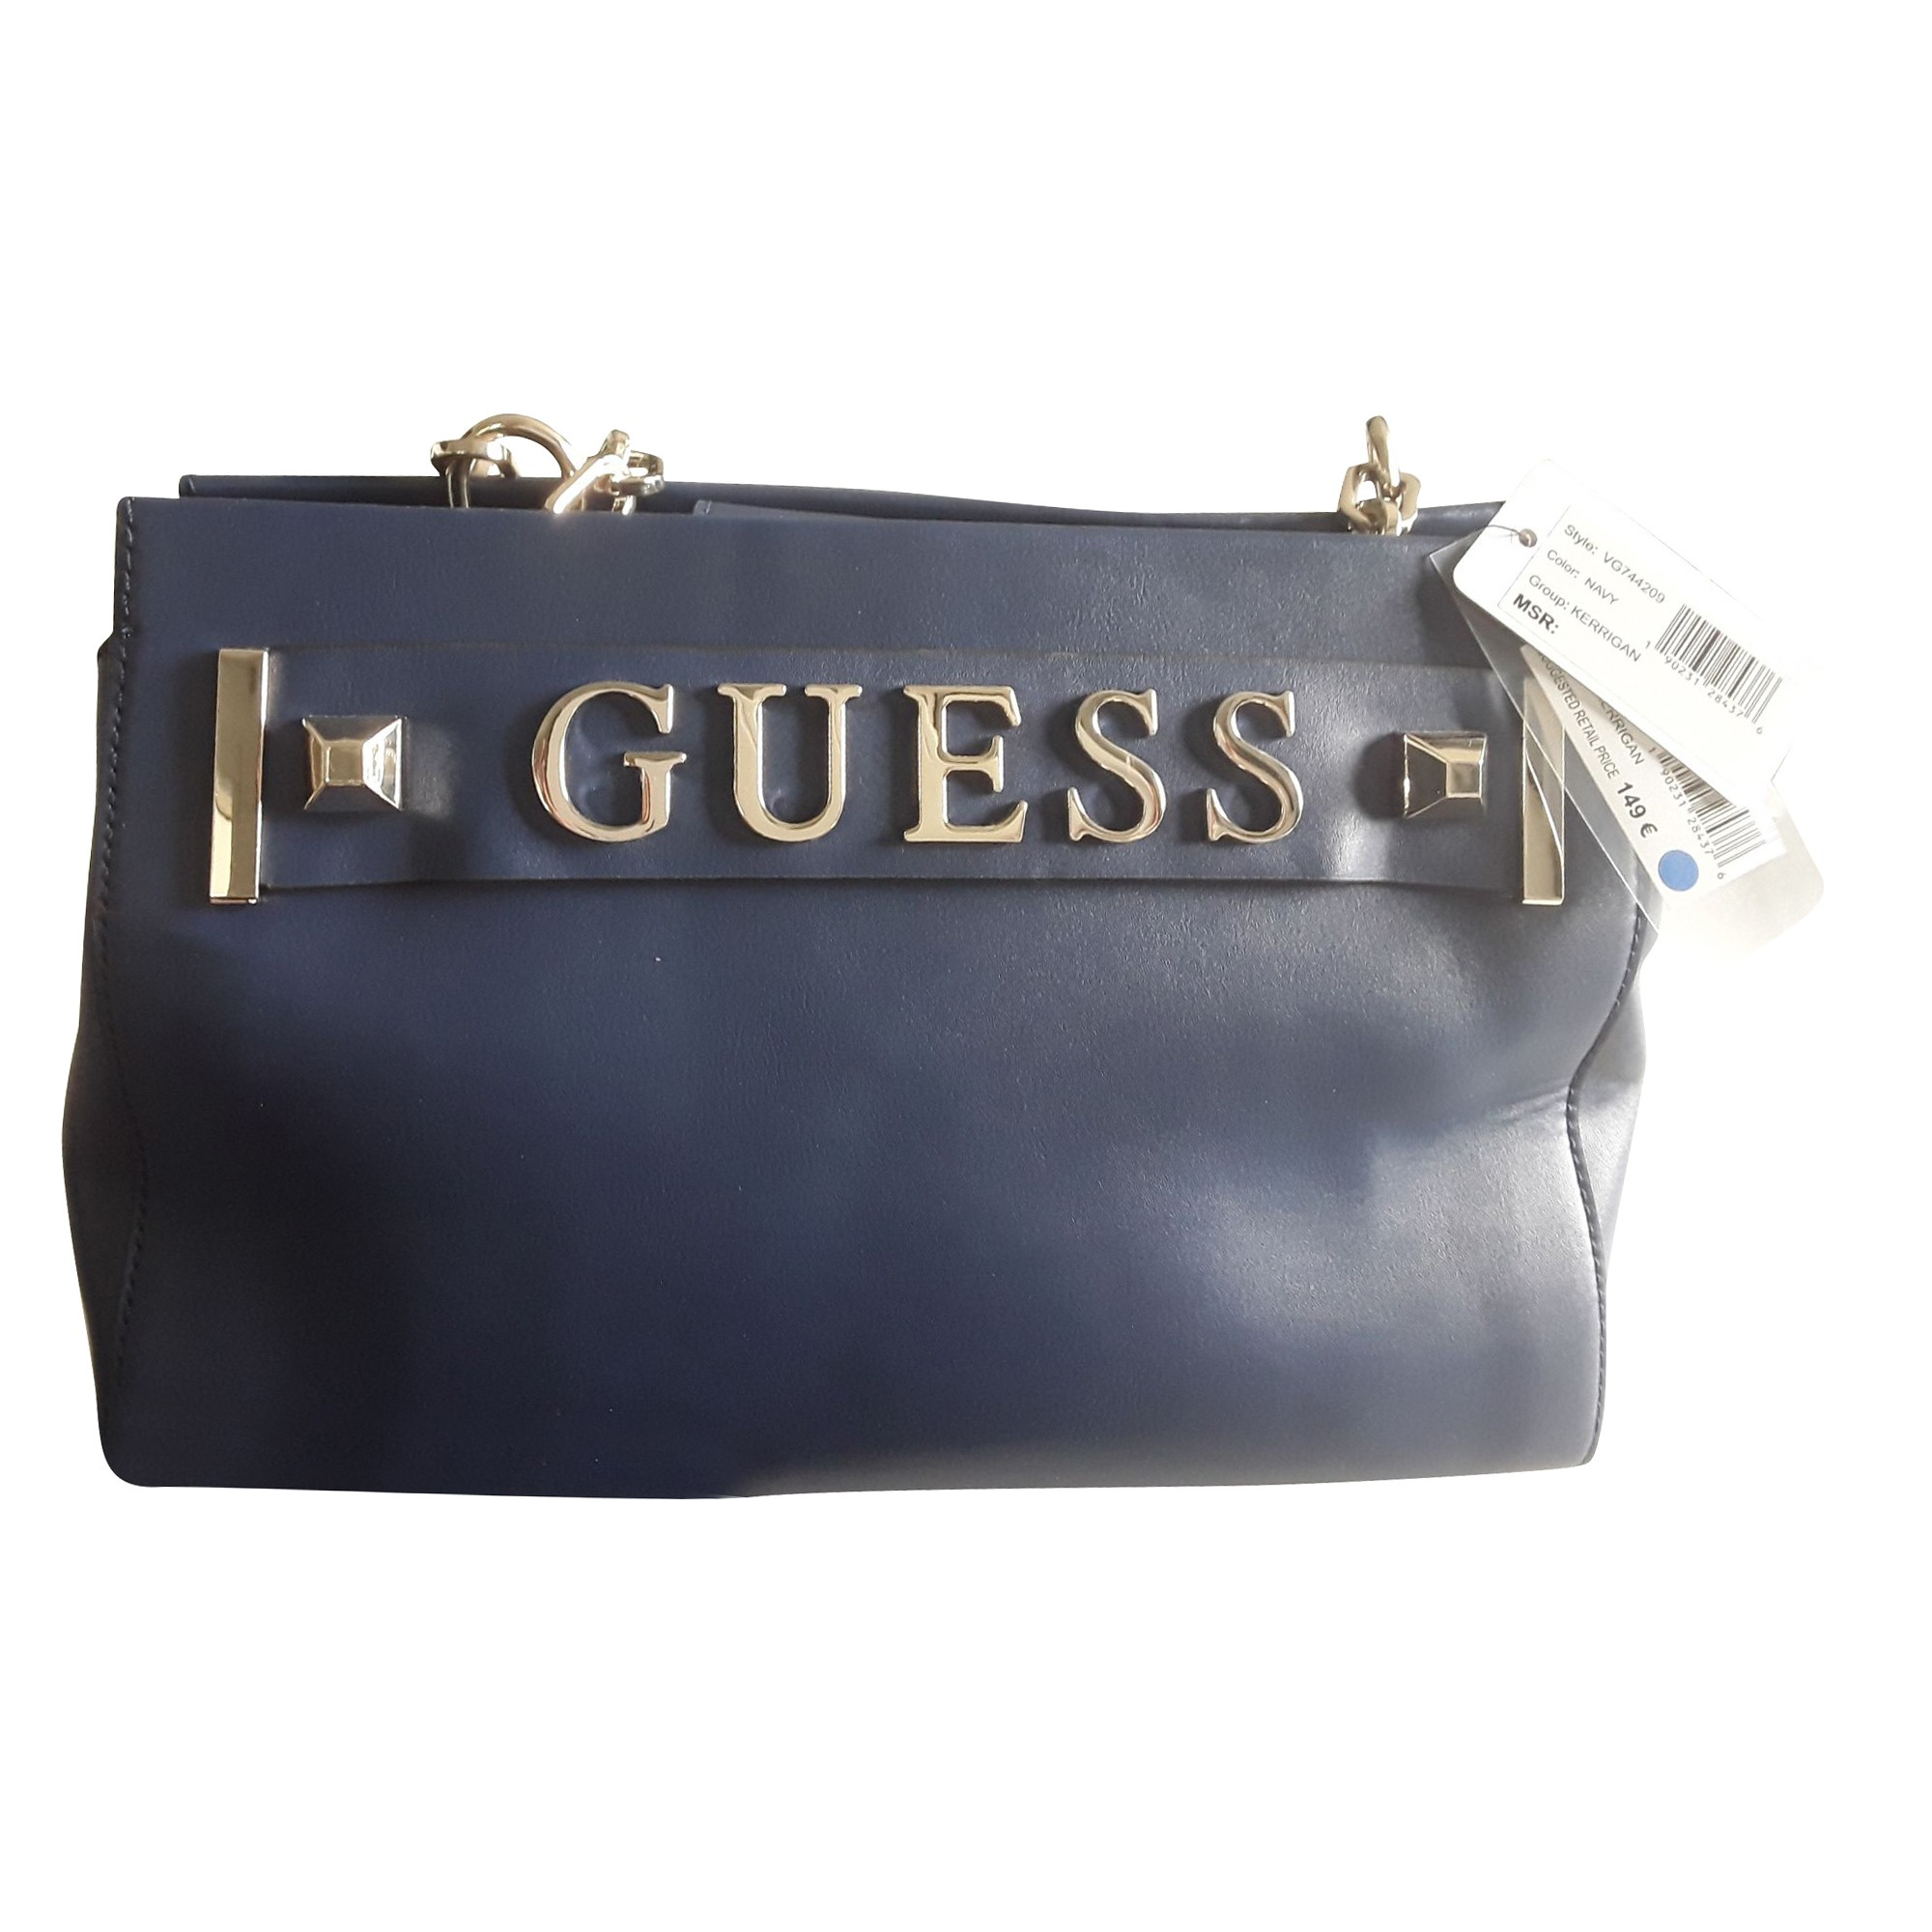 Leather Handbag GUESS Blue, navy, turquoise